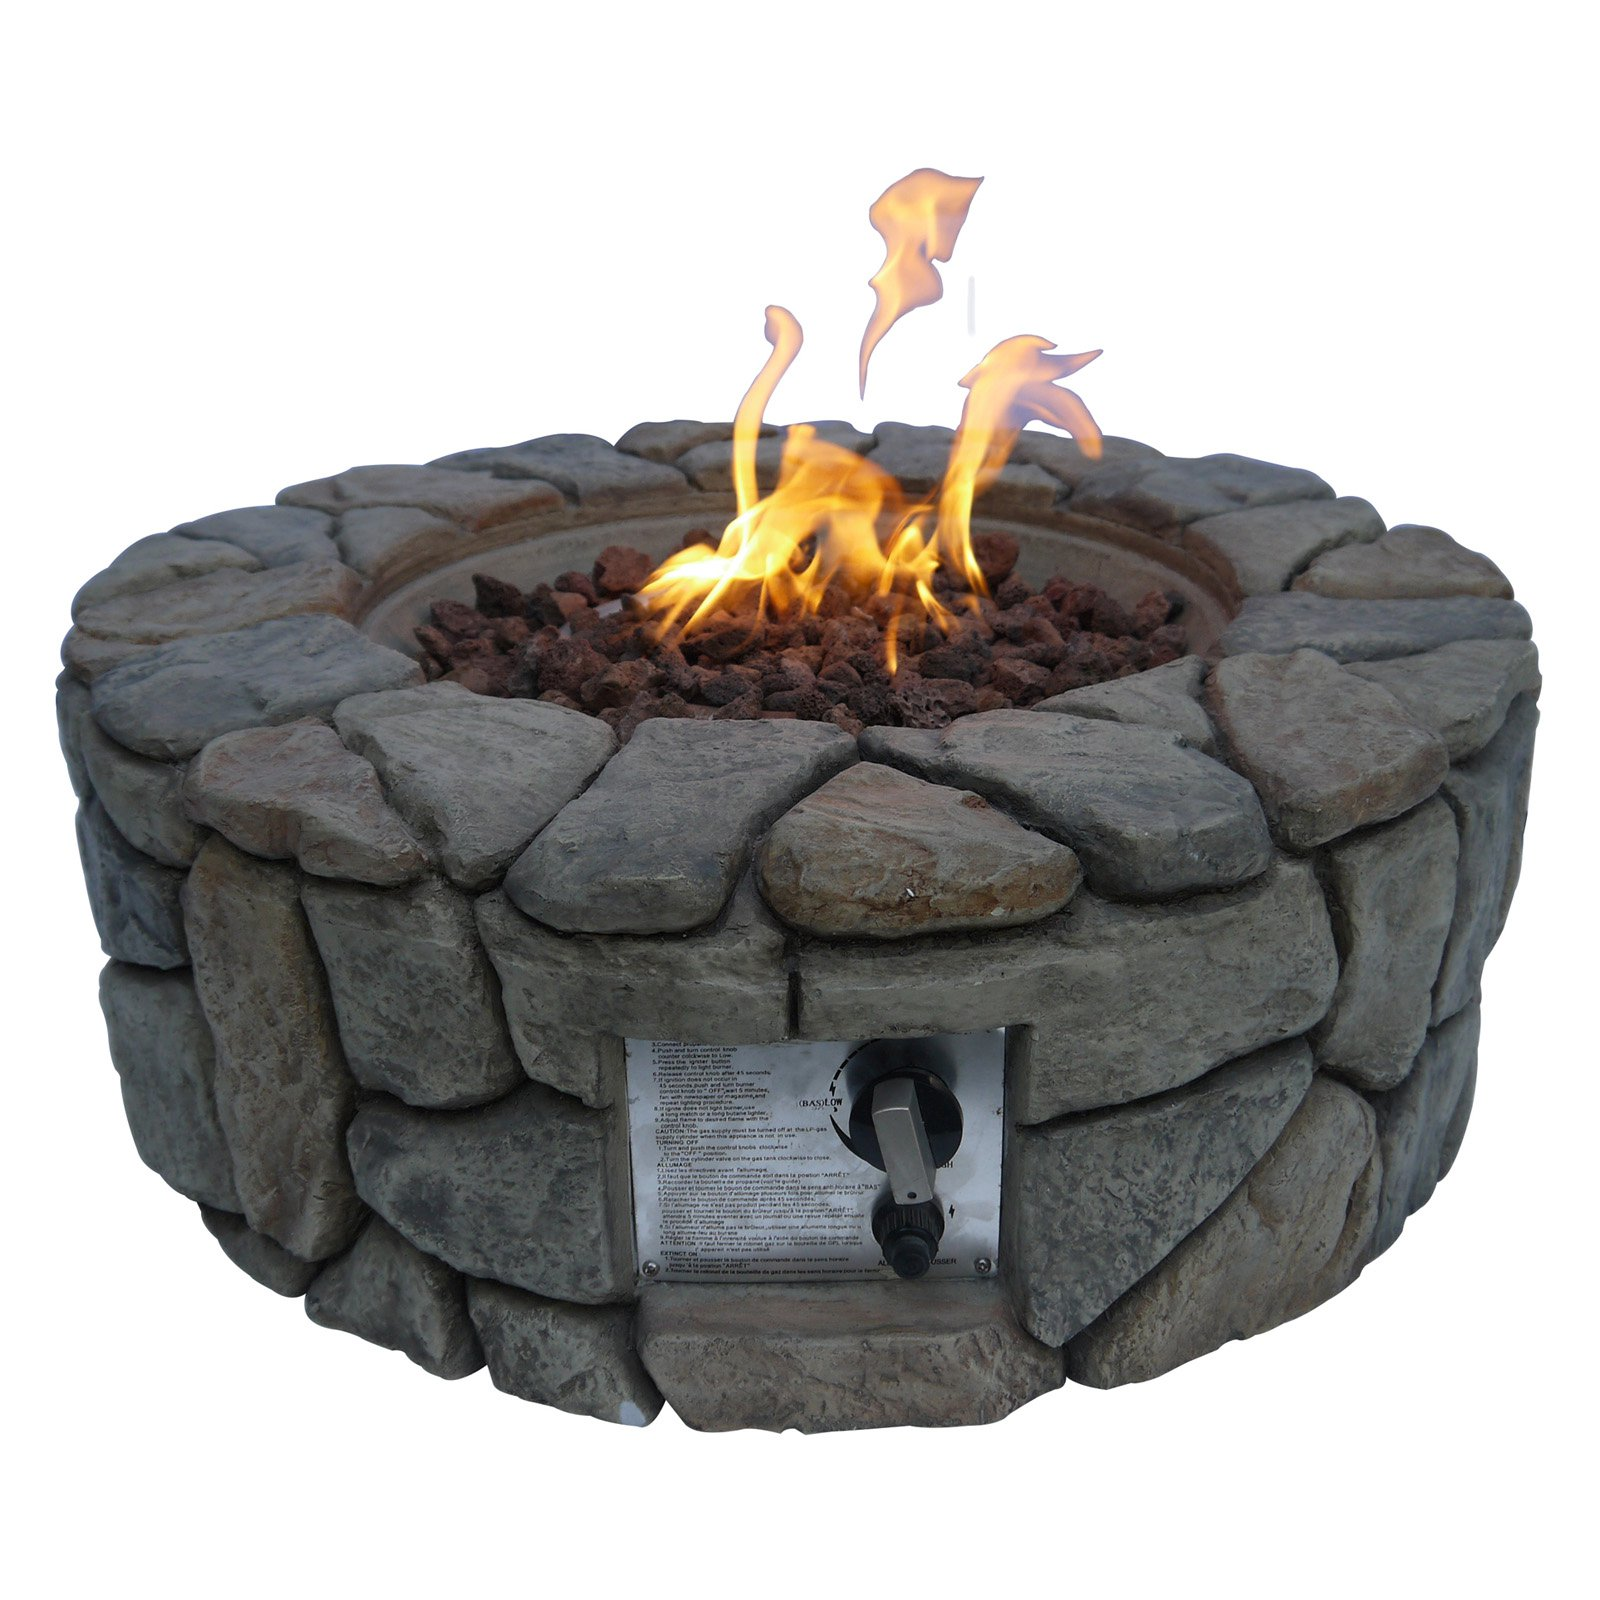 Peaktop Outdoor Stone Propane Gas Firepit by Teamson Design